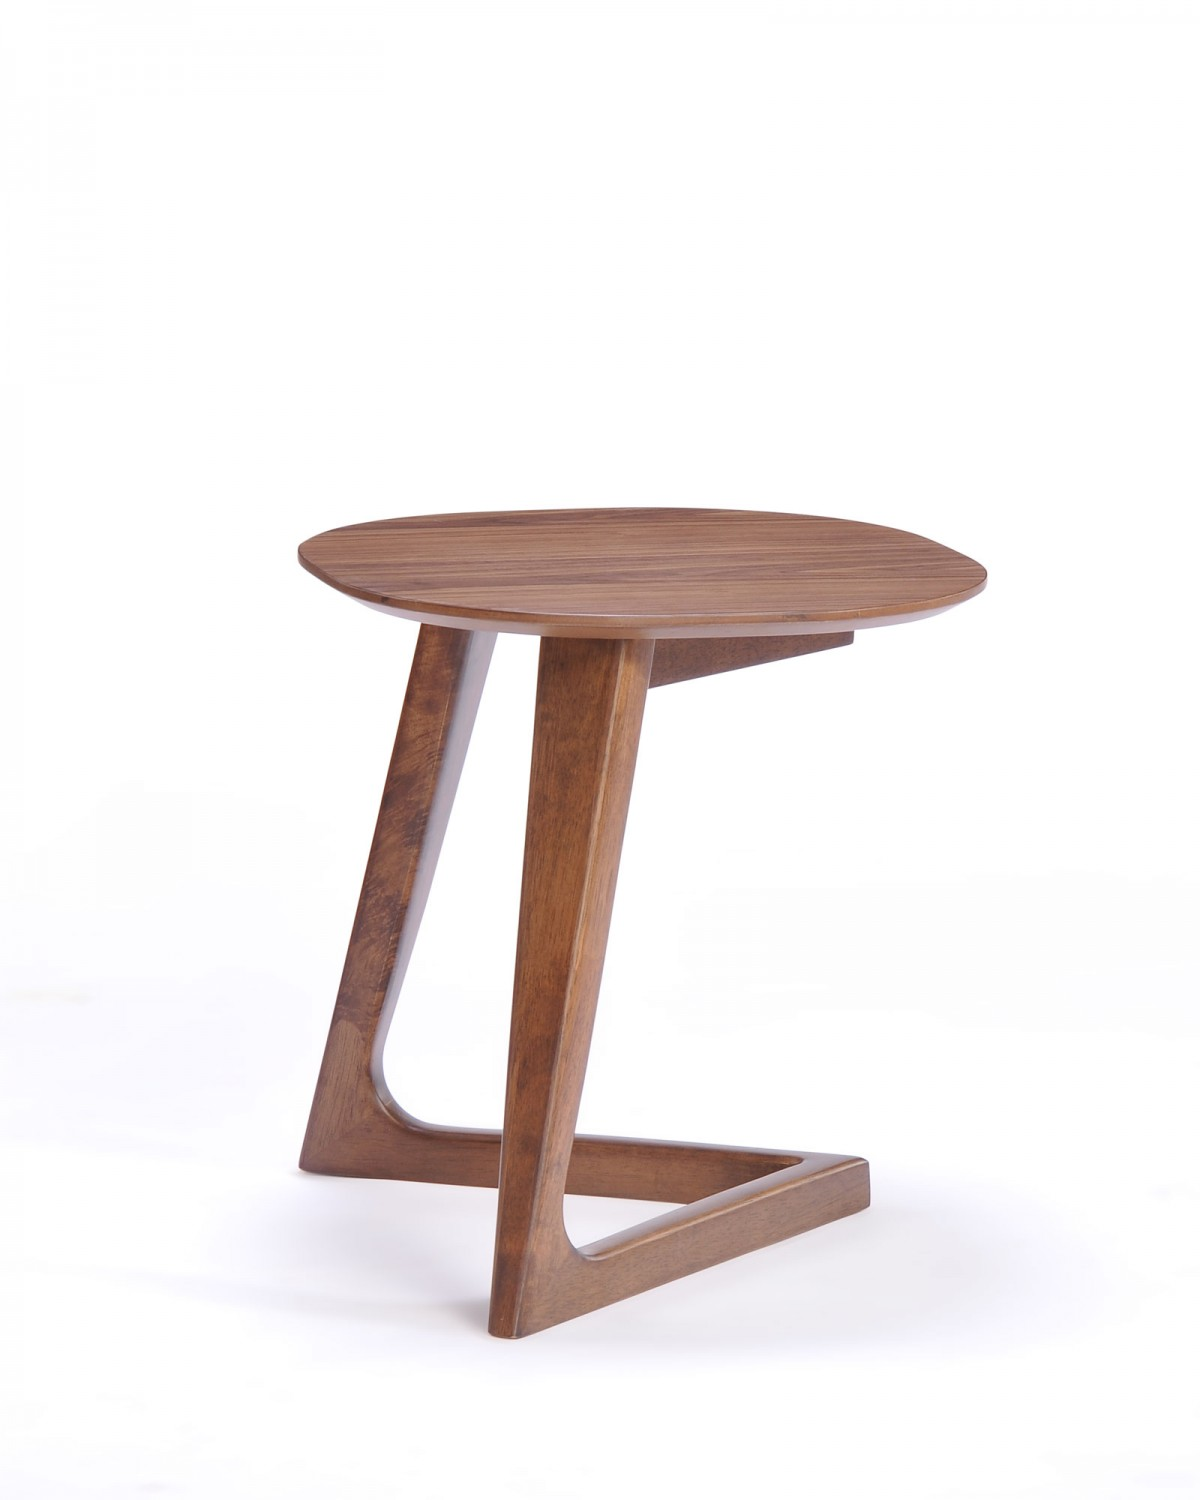 Modrest Jett Modern Walnut End Table - End Tables - Living Room